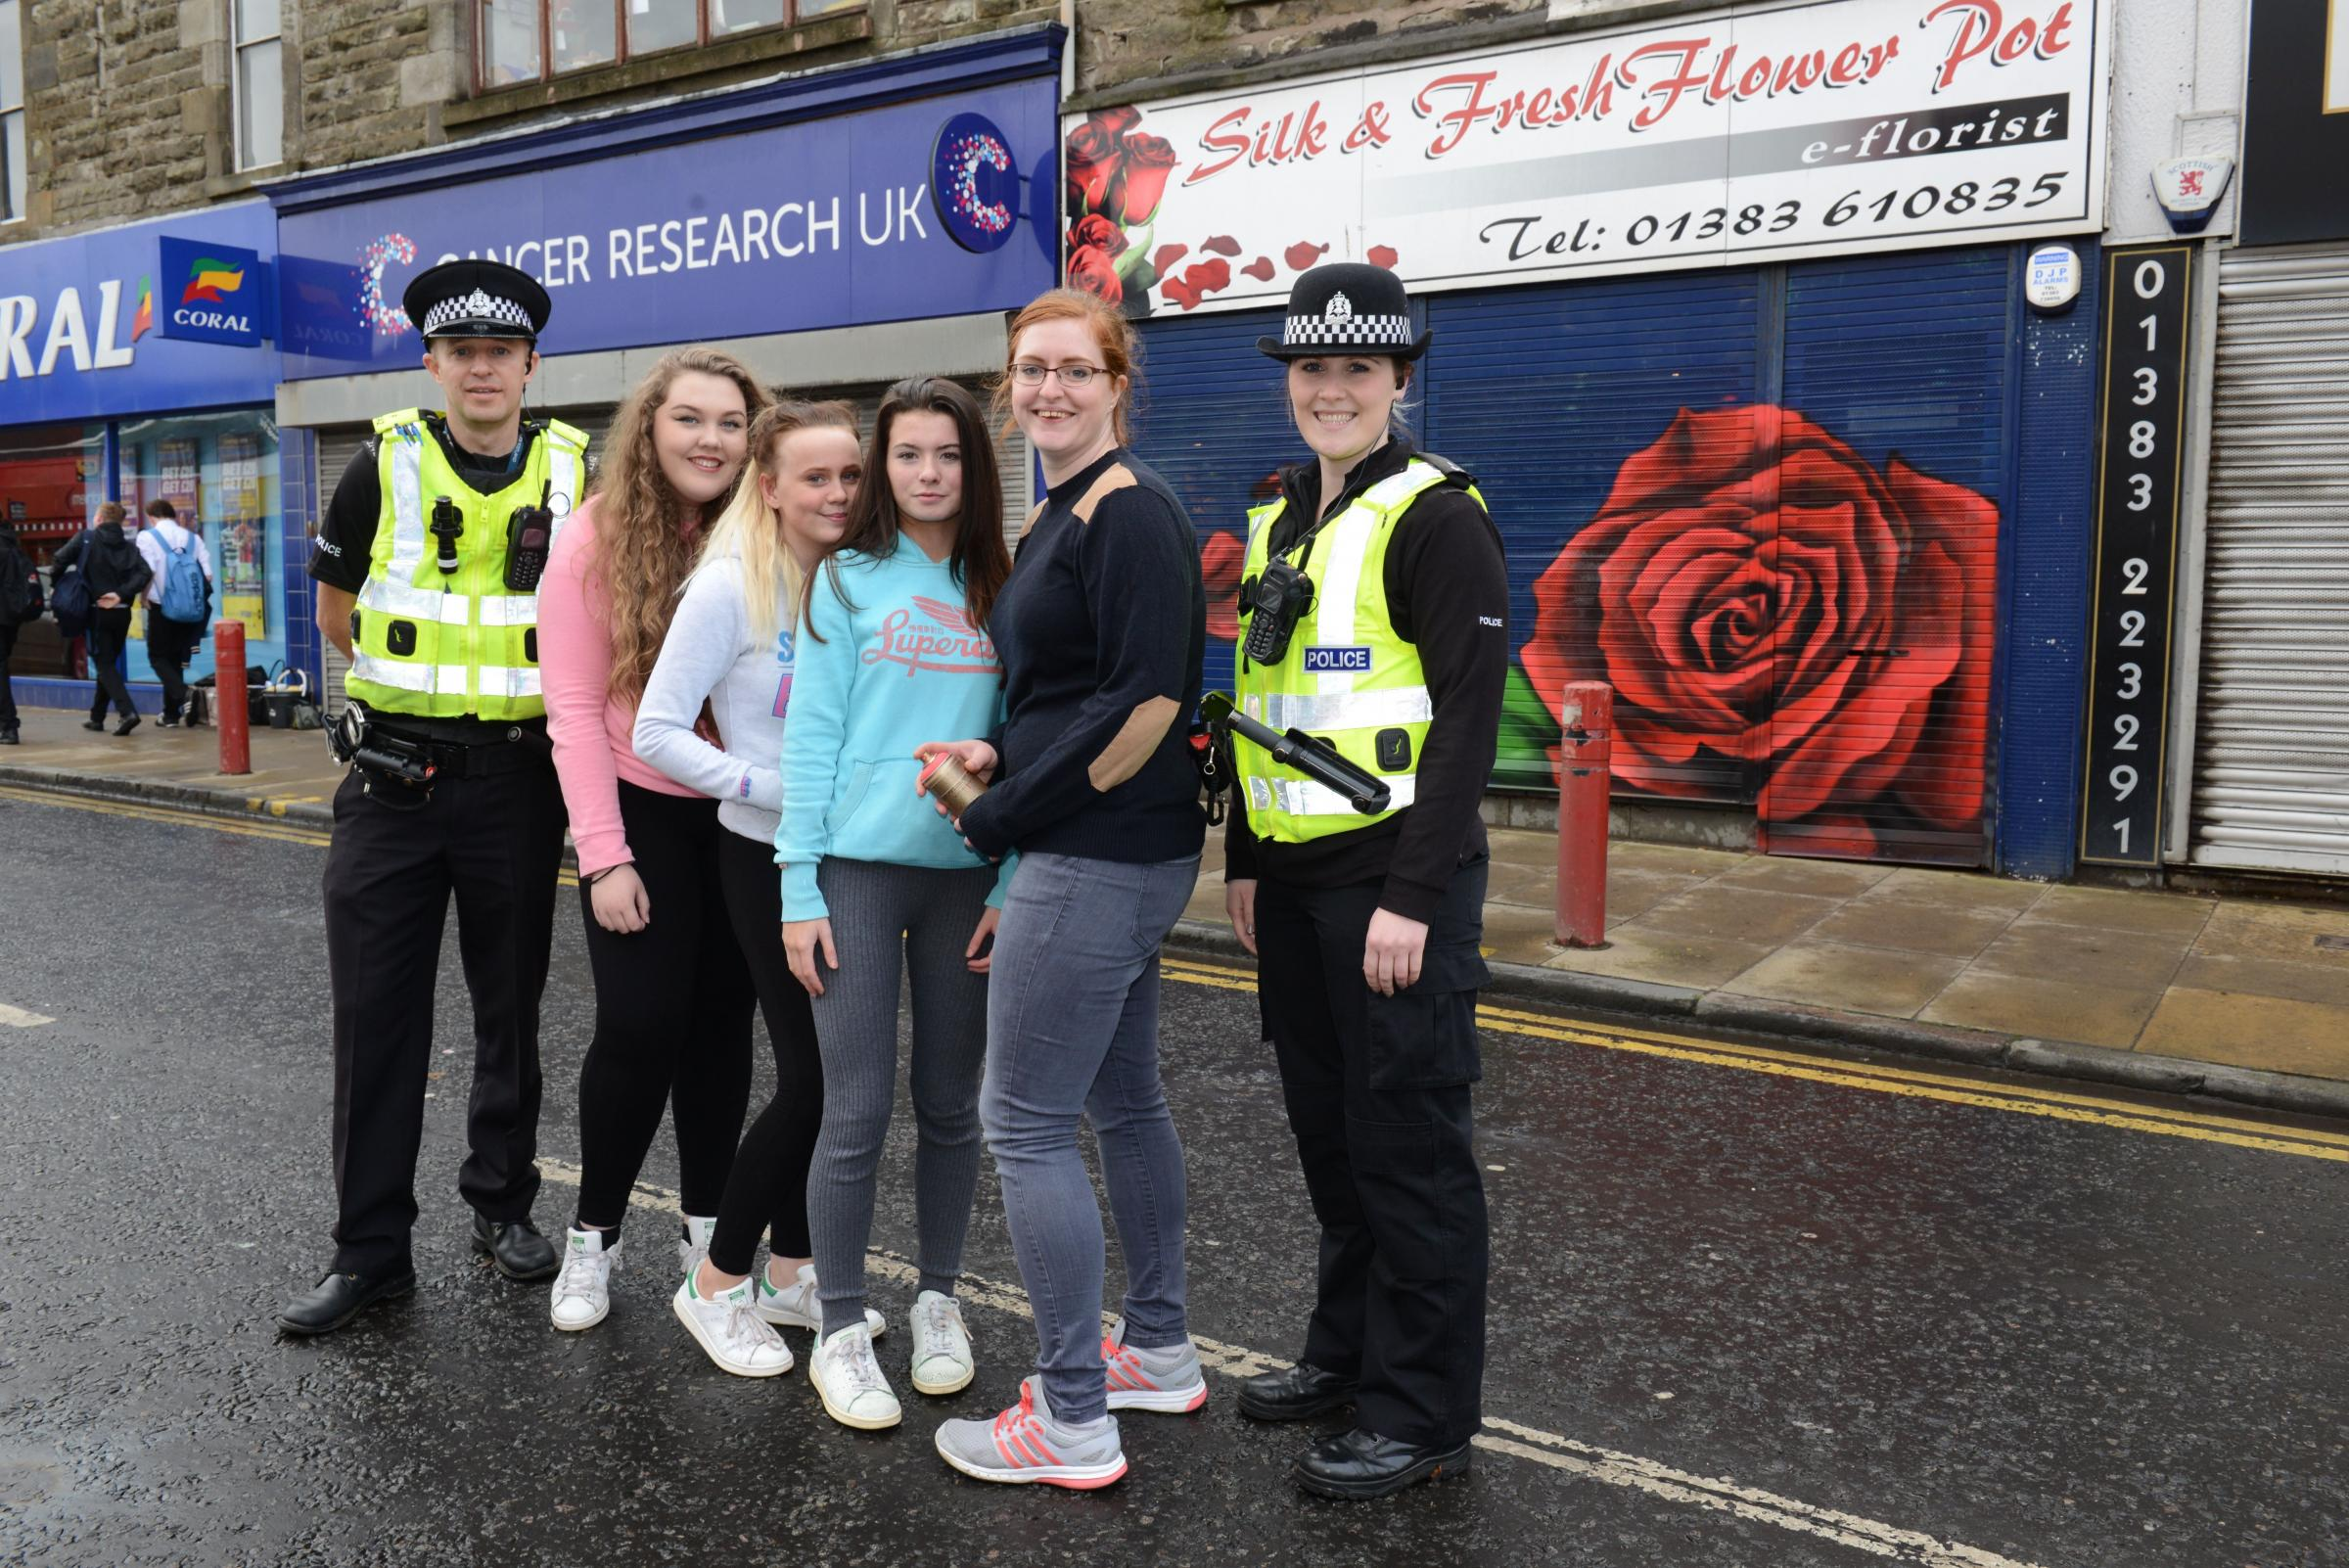 Chloe Scott; Olivia McPherson and Jordan Brown, with artist Kerry Wilson and community police team members Barry Smith and Brittany Primeau.